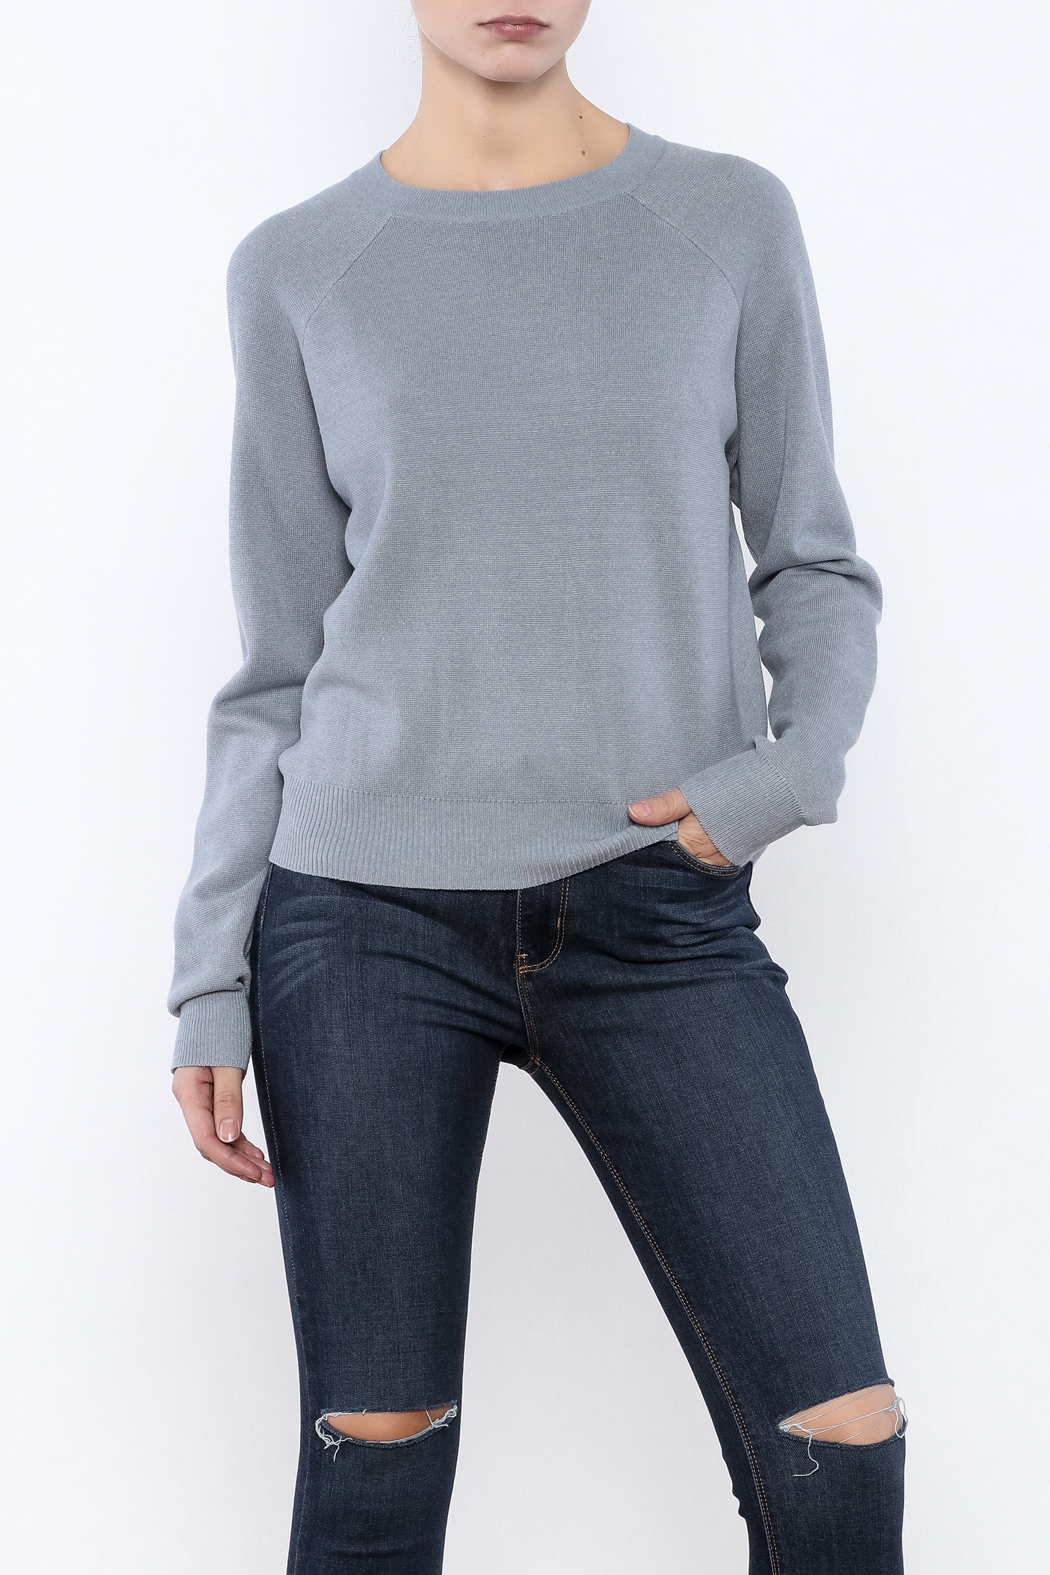 Glamorous Dusty Blue Knit Sweater from New York City by Jupe ...